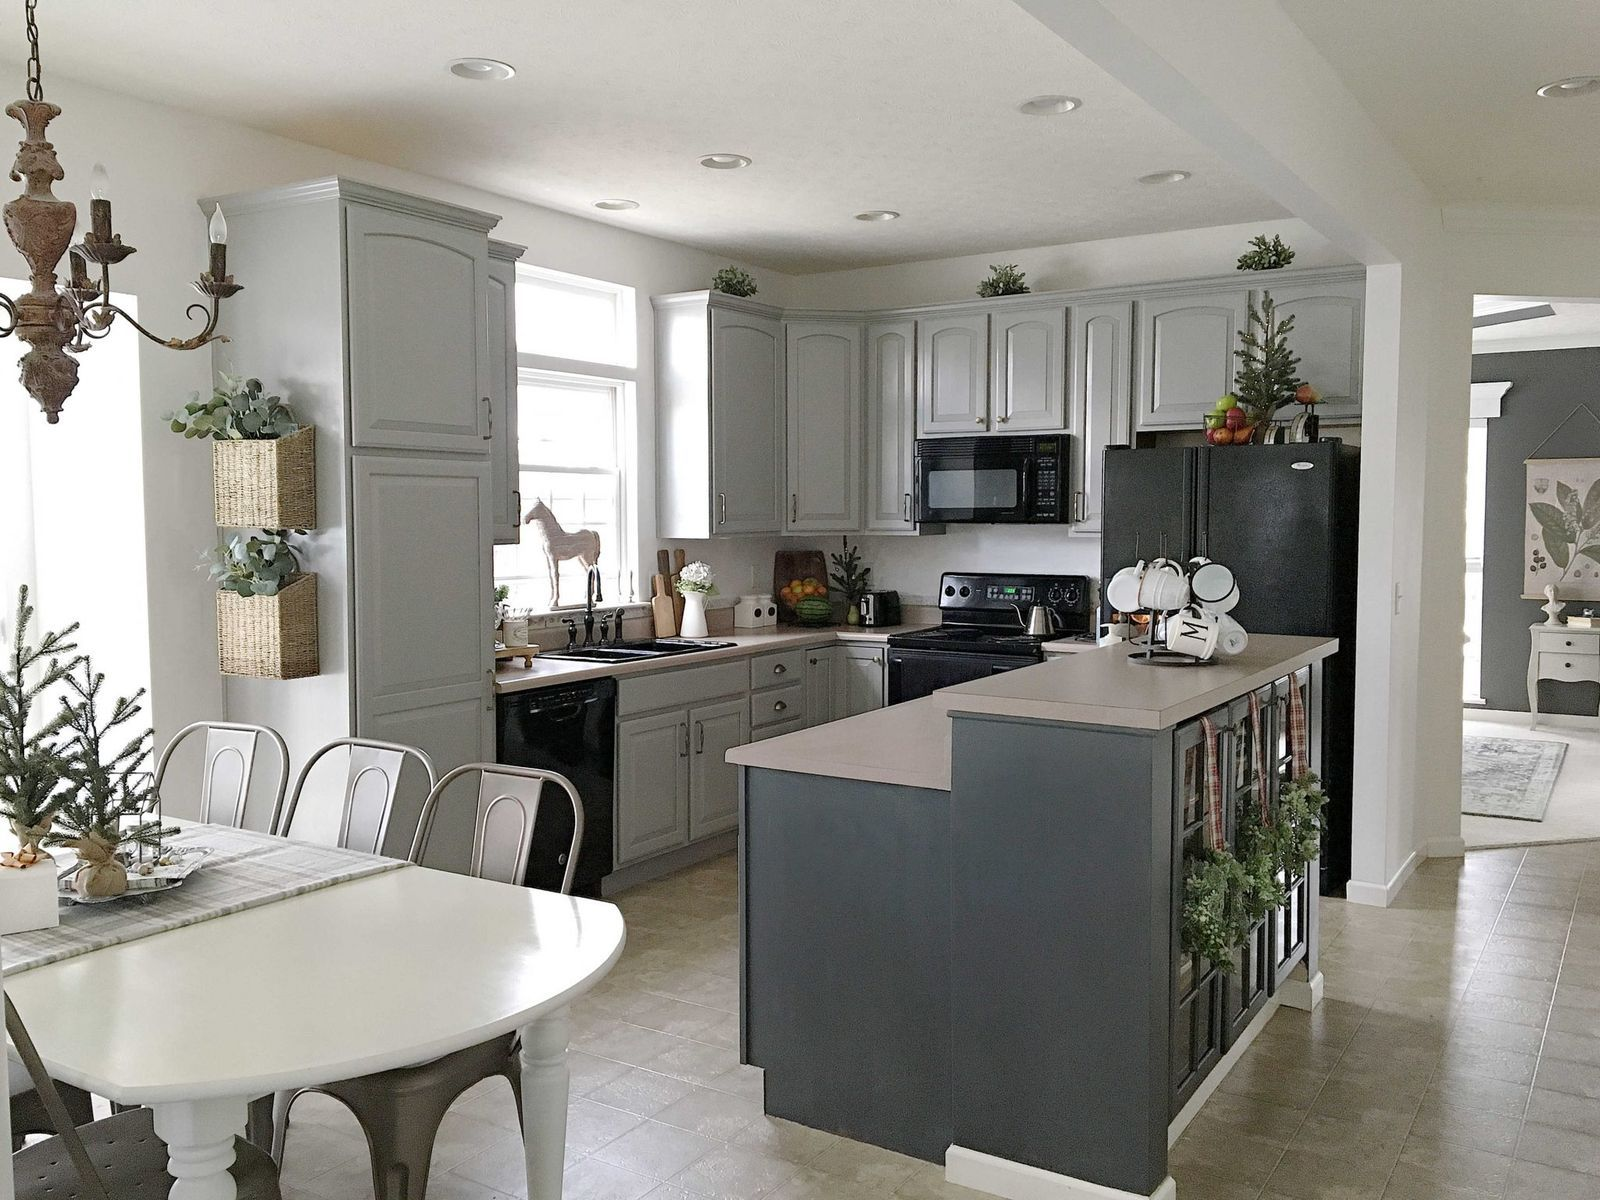 15 Ways to Redo Your Kitchen Cabinets Without Breaking the ...